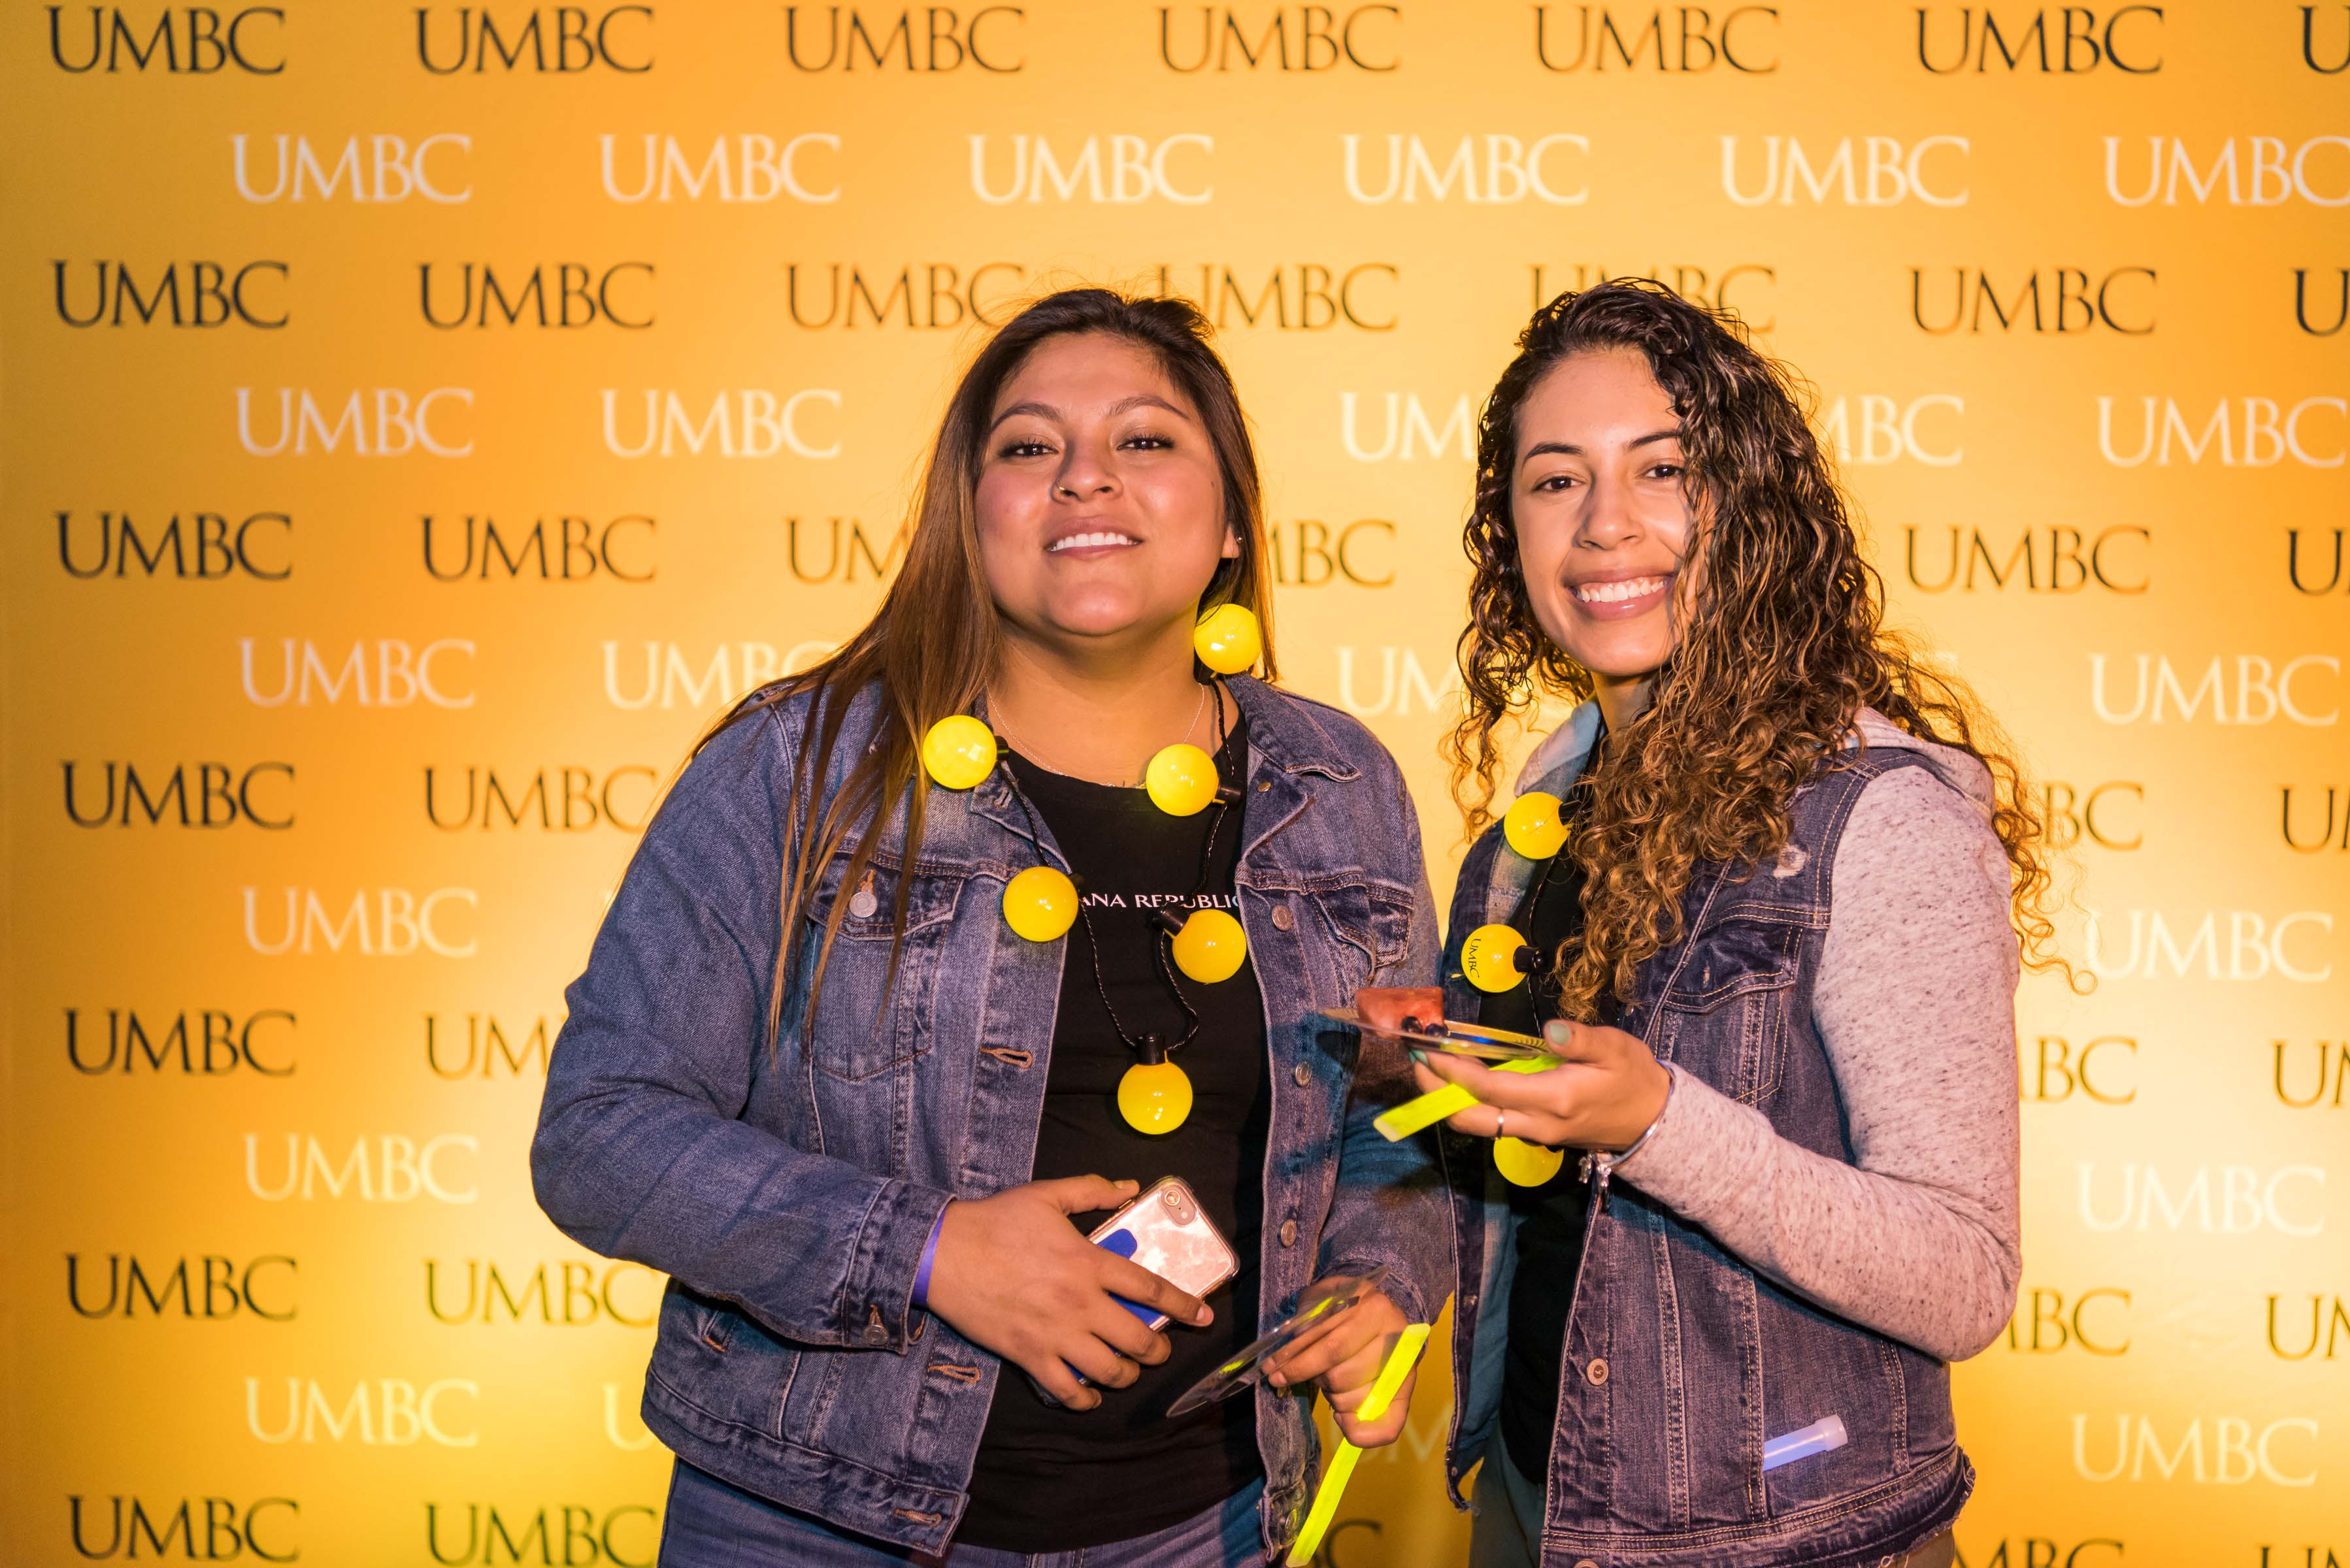 Two women pose in front of UMBC wall at Pier 5 reception